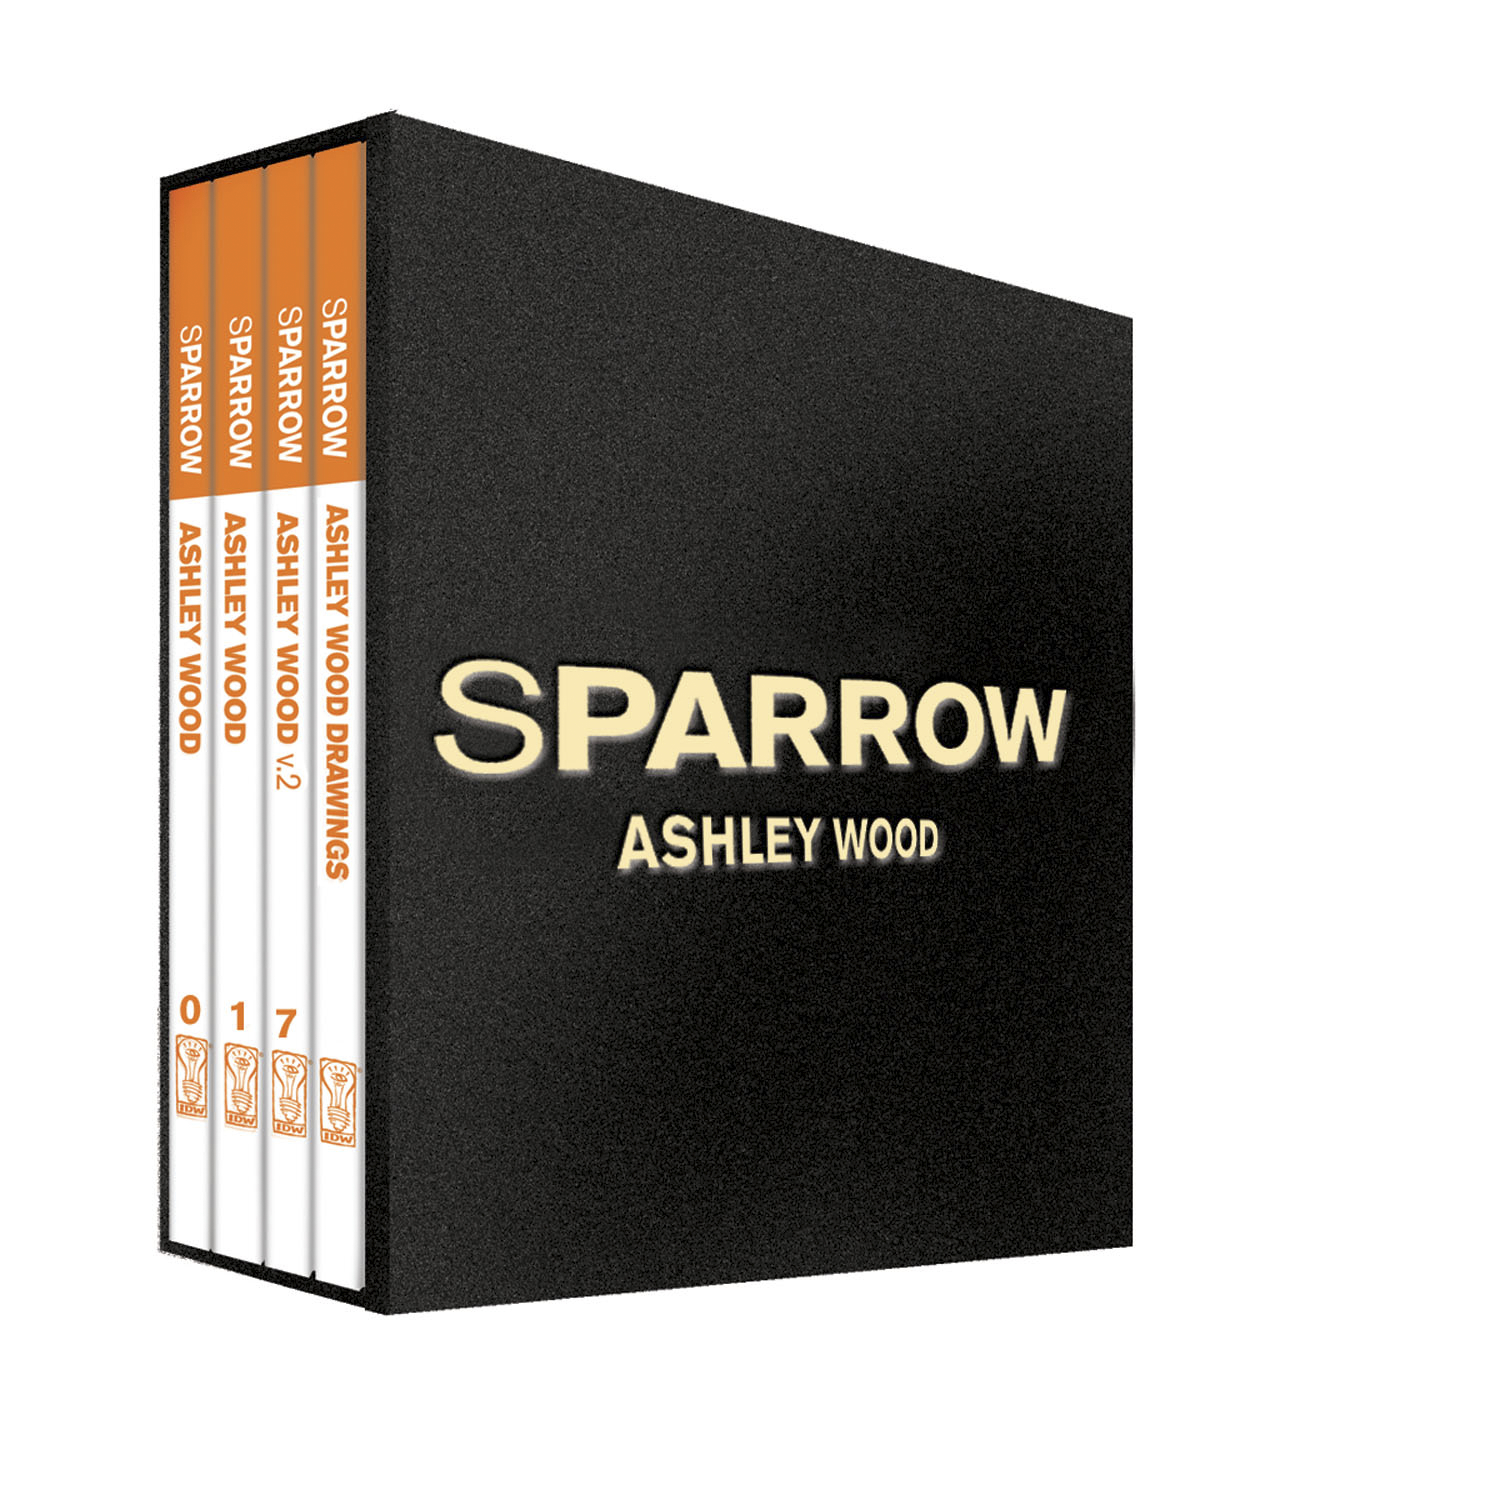 SPARROW HC BOX SET ASHLEY WOOD